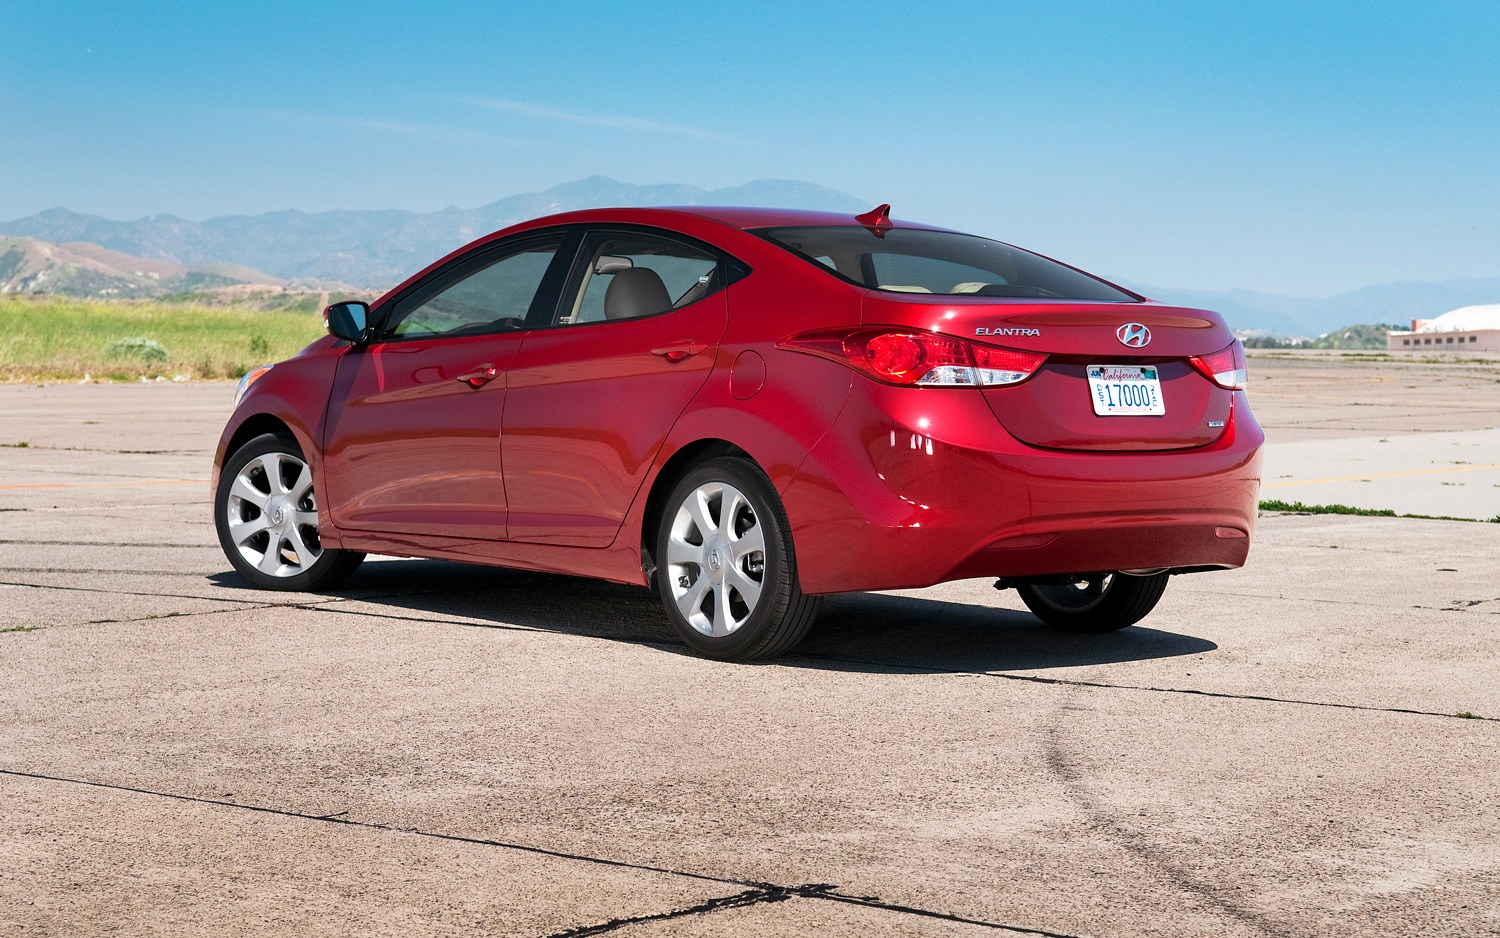 Next Hyundai Elantra Delivers 168 HP From Advanced 20Liter Four